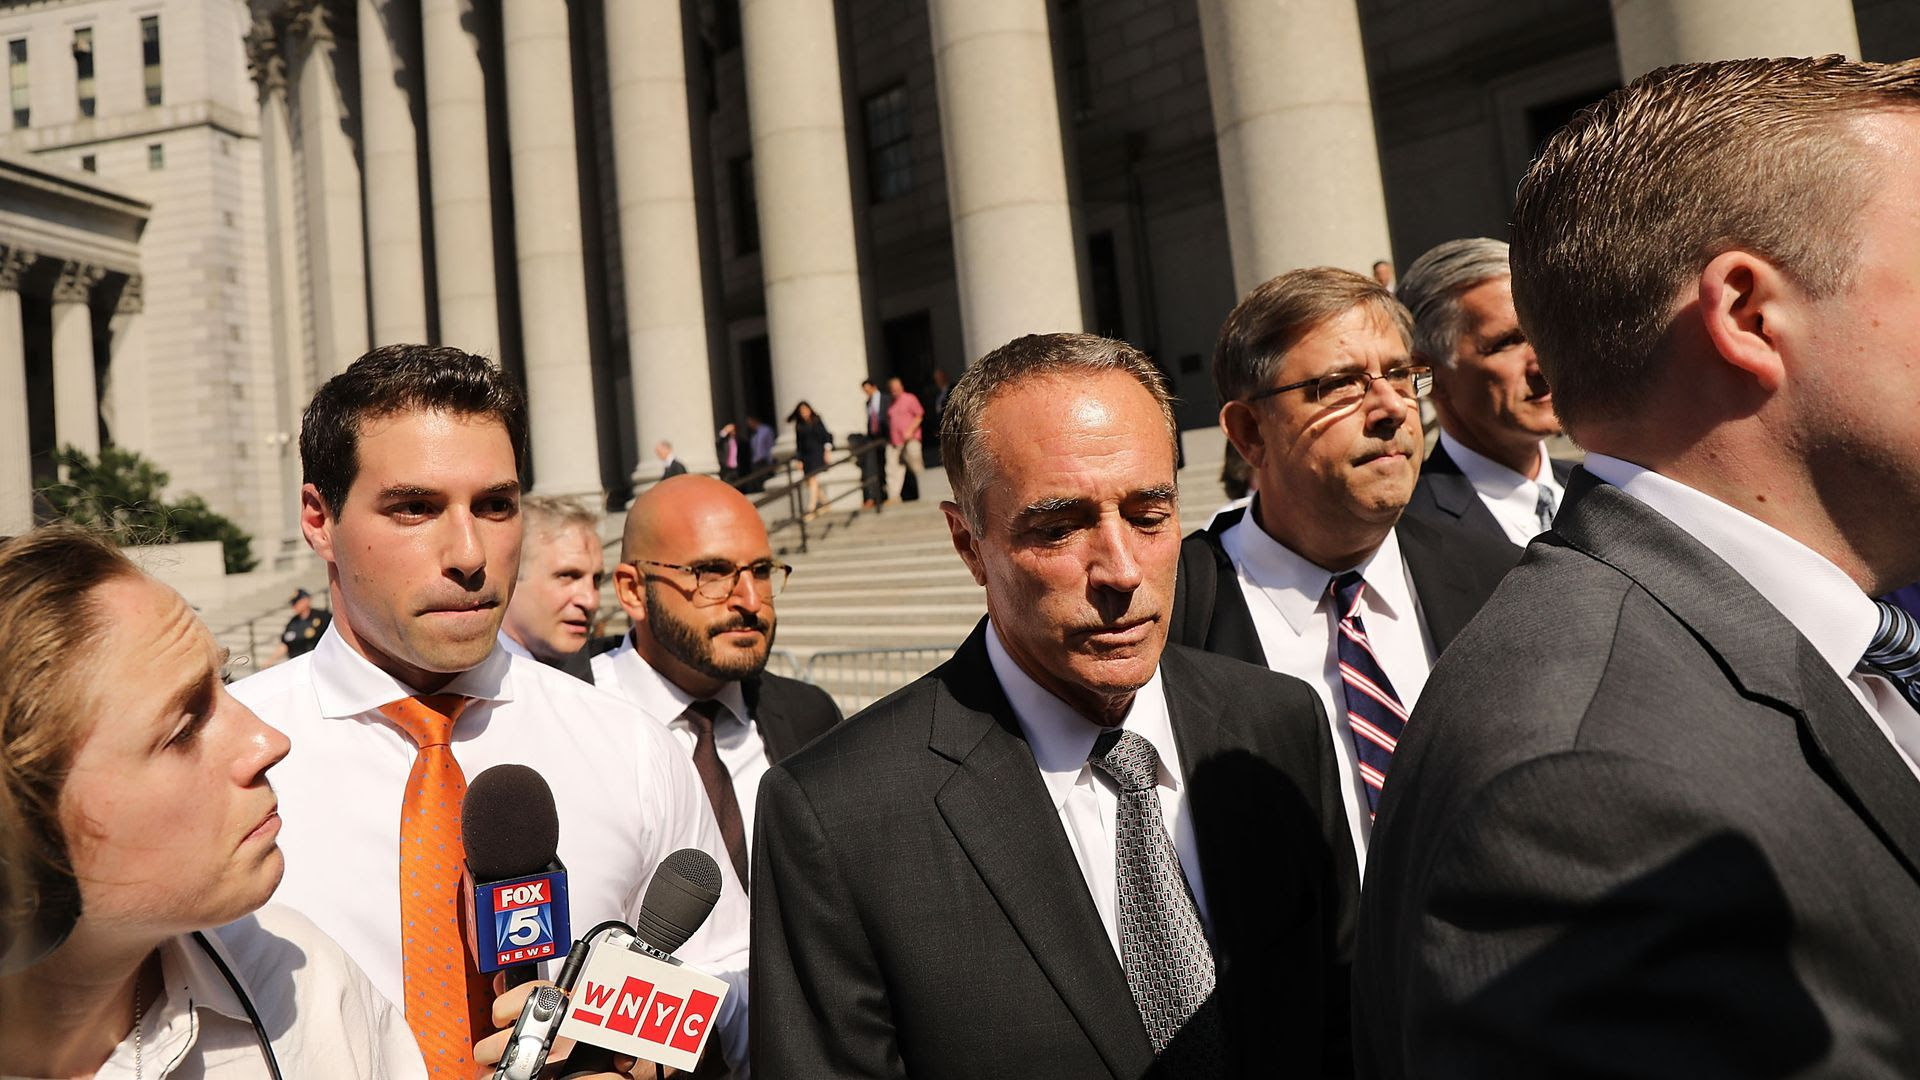 Chris Collins walks out of court with media holding microphones near him.